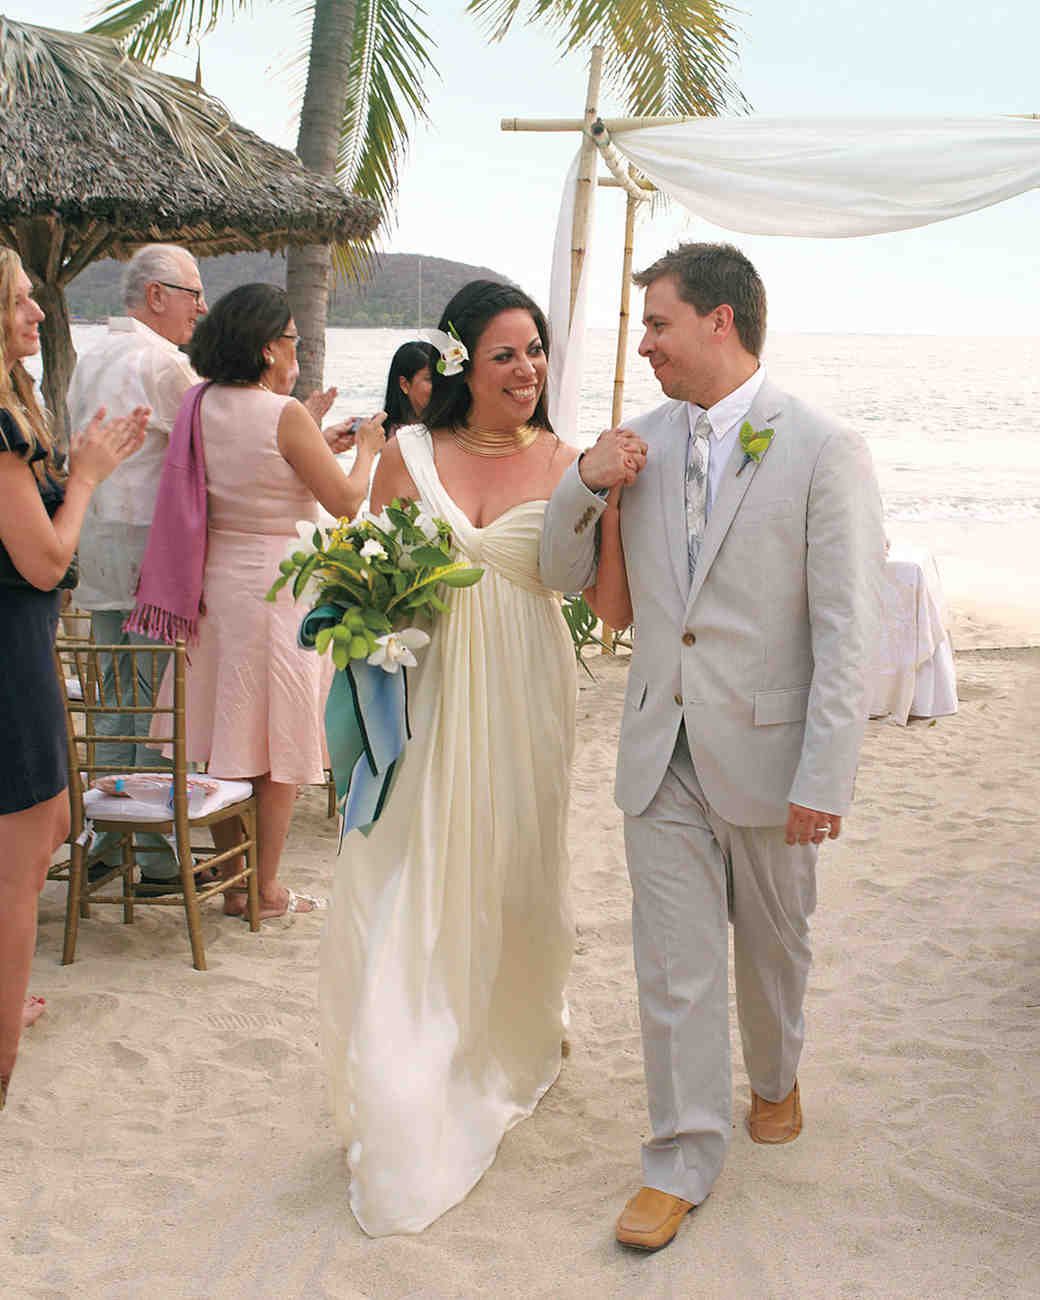 Weddings In Mexico: A Navy-and-White Destination Wedding On The Beach In